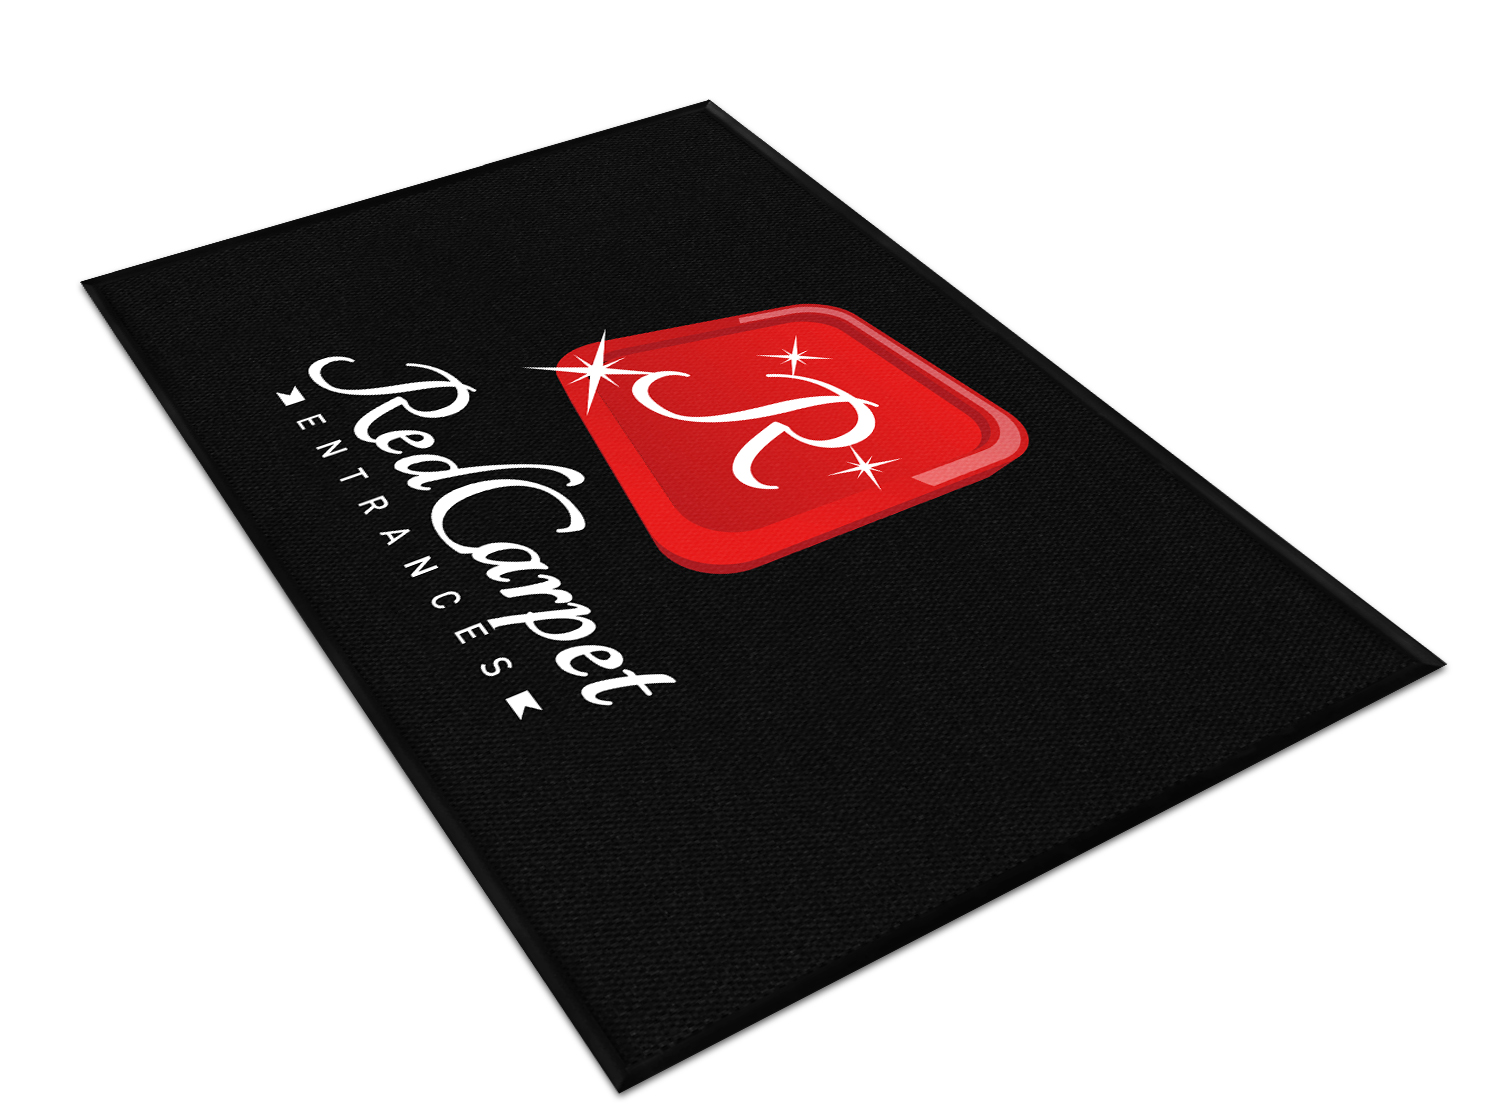 Custom Printed Berber Rug — Red Carpet Runner & Red Carpet Backdrop Event  Shop.